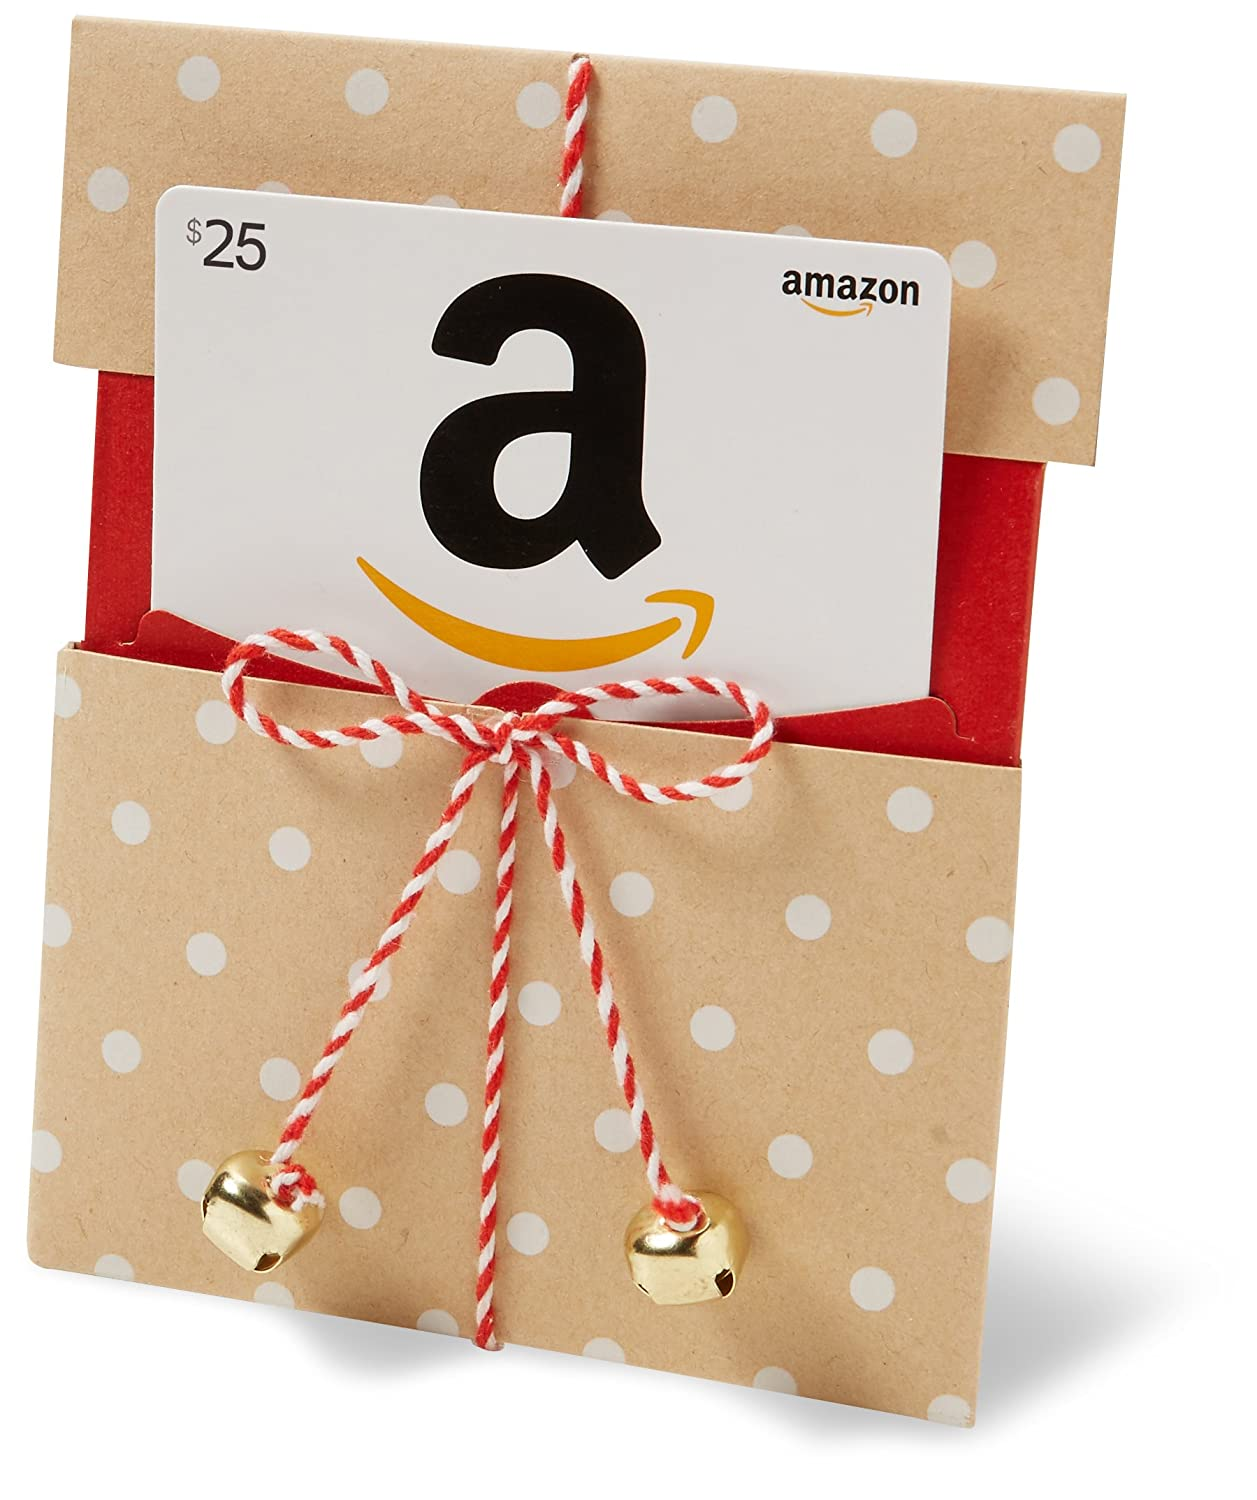 .com Gift Card in a Kraft Paper Reveal with Jingle Bells